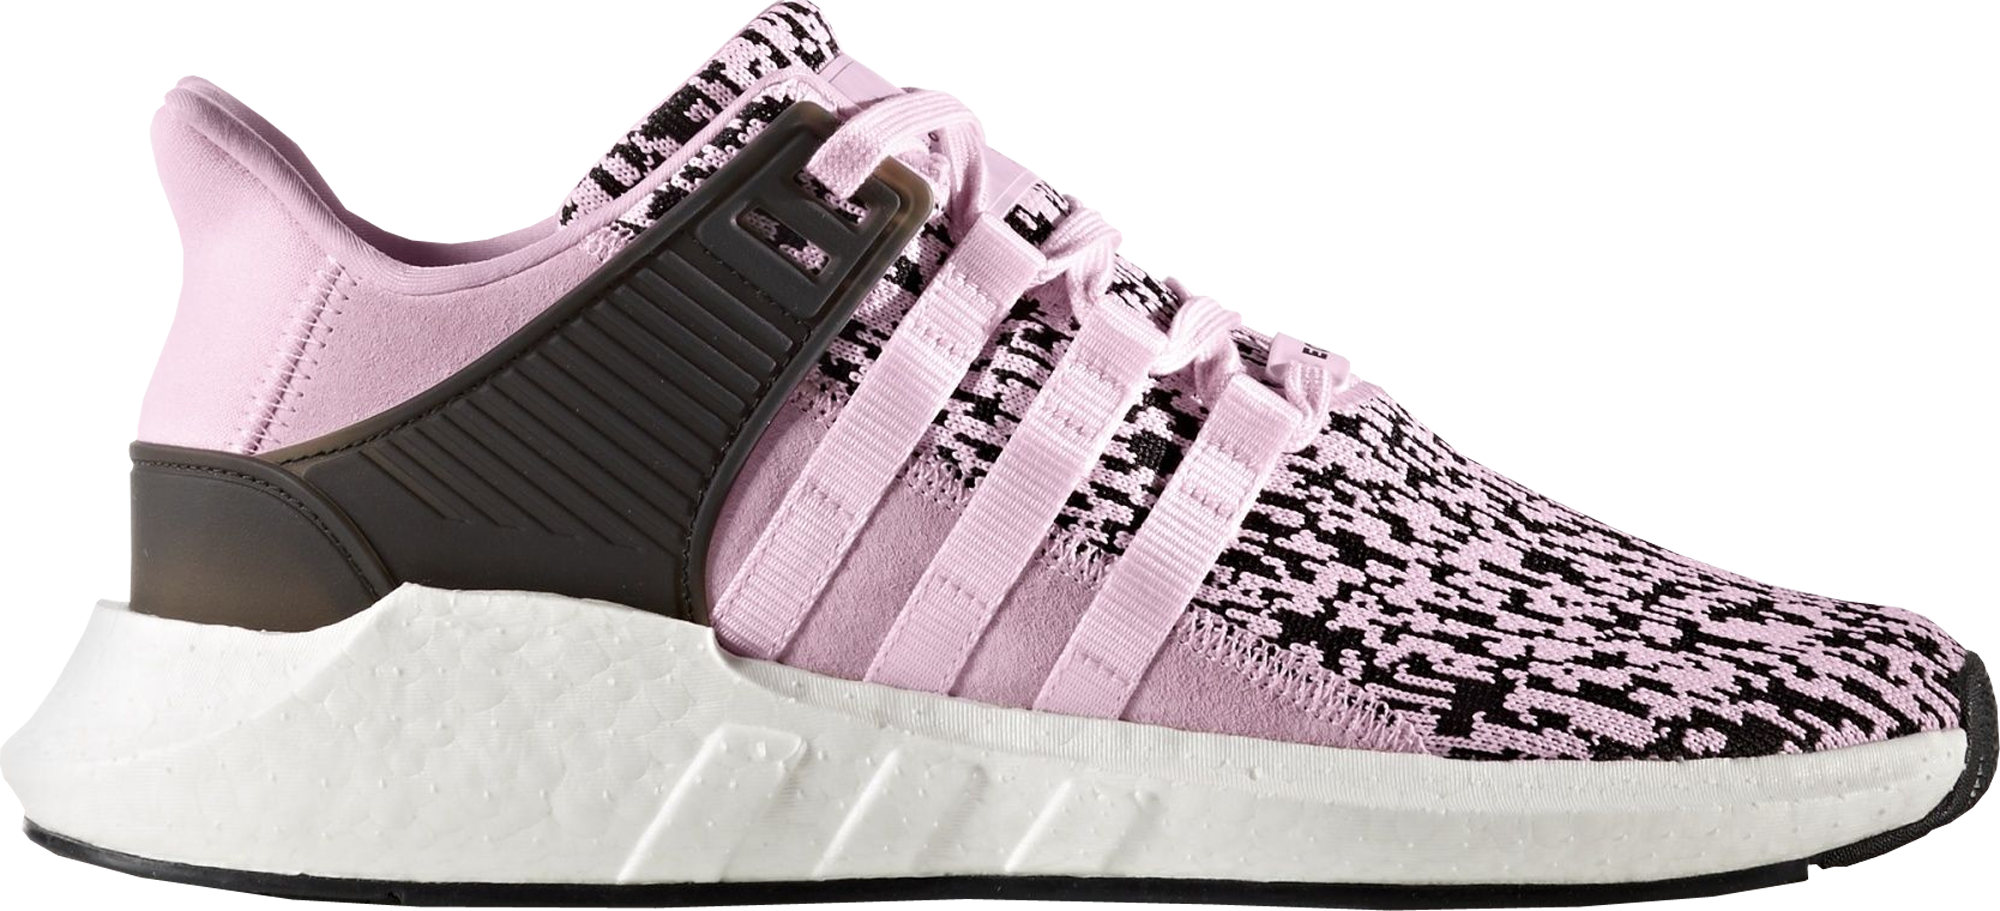 best loved ed29c ea8fe adidas EQT Support 9317 Glitch Camo Pink Black Womens